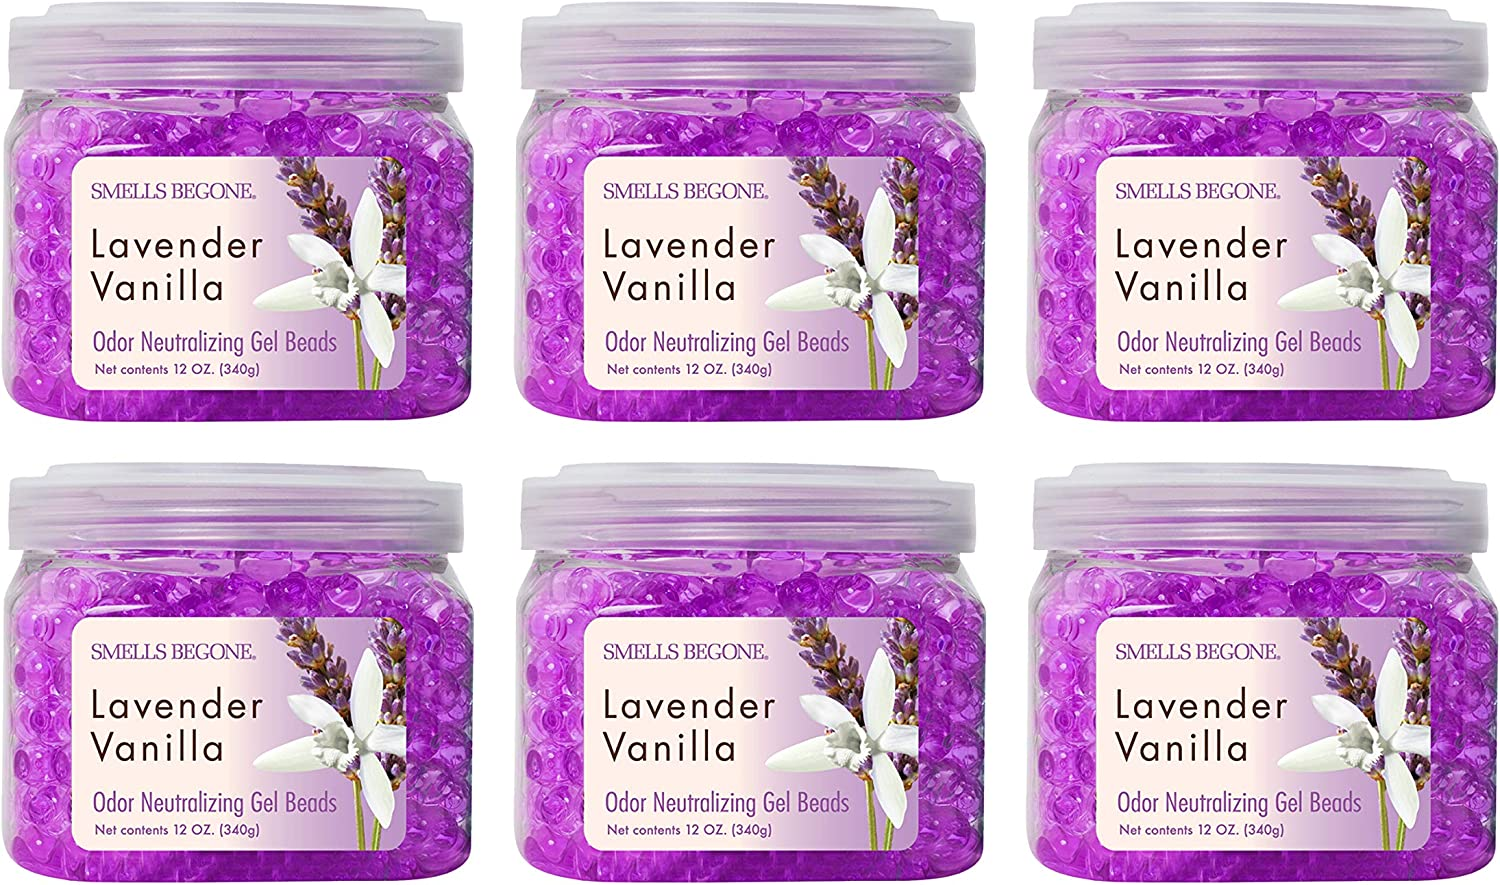 SMELLS BEGONE Odor Eliminator Gel Beads - Air Freshener -Eliminates Odor in Bathrooms, Cars, Boats, RVs and Pet Areas - Made with Natural Essential Oils - Lavender Vanilla Scent (6 Pack, Purple)